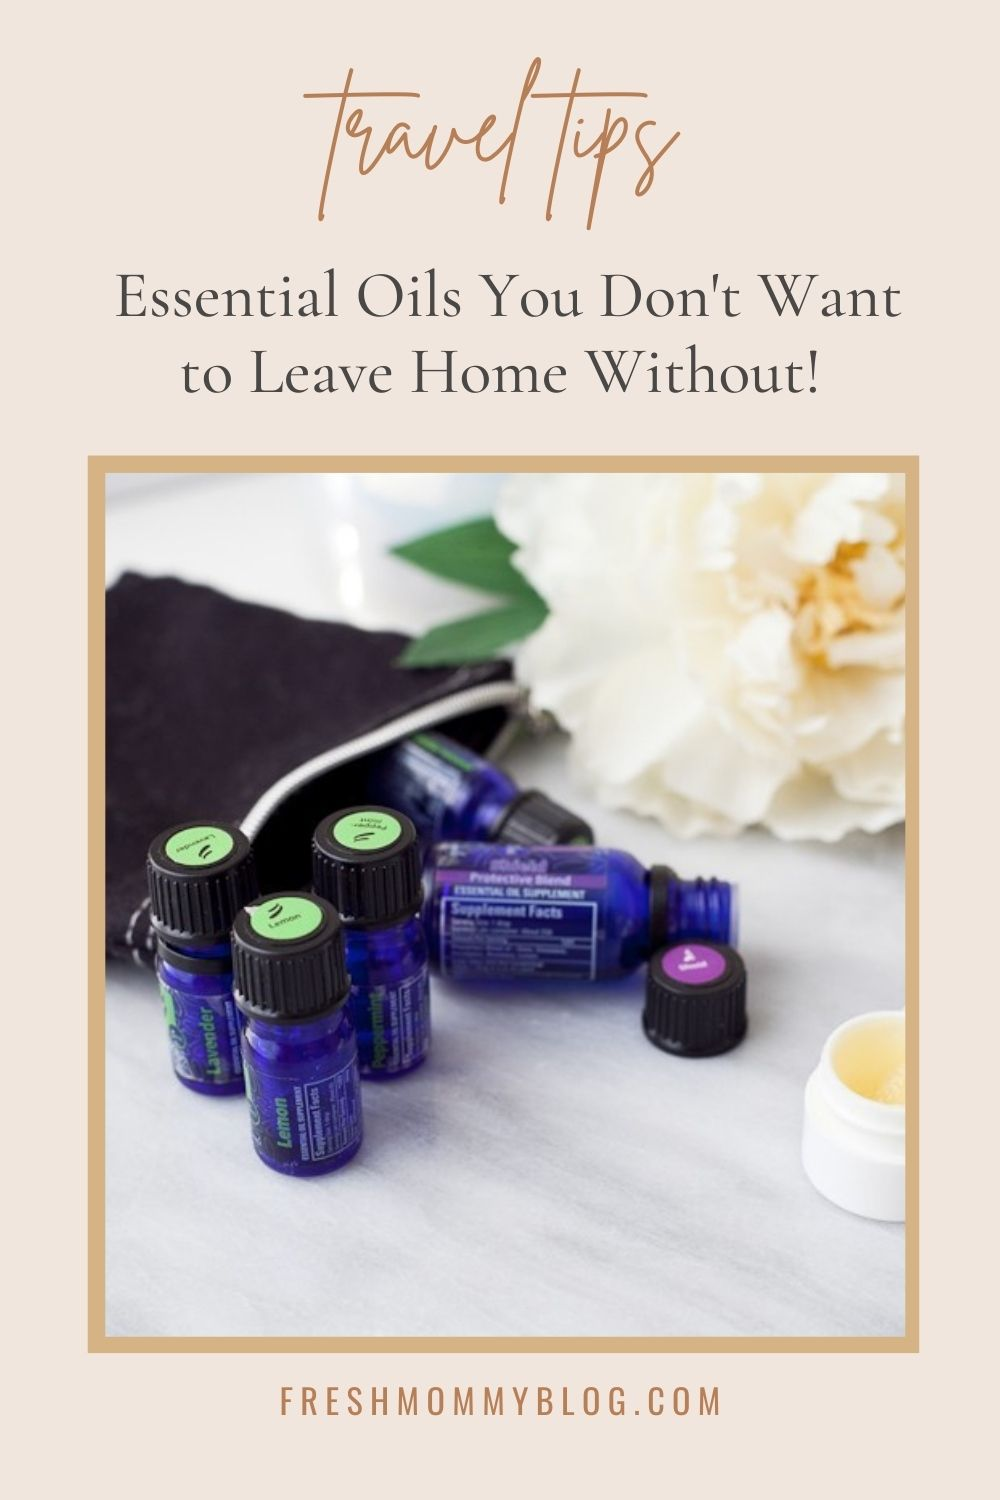 Top essential oils for travel and why you don't want to leave home without them.